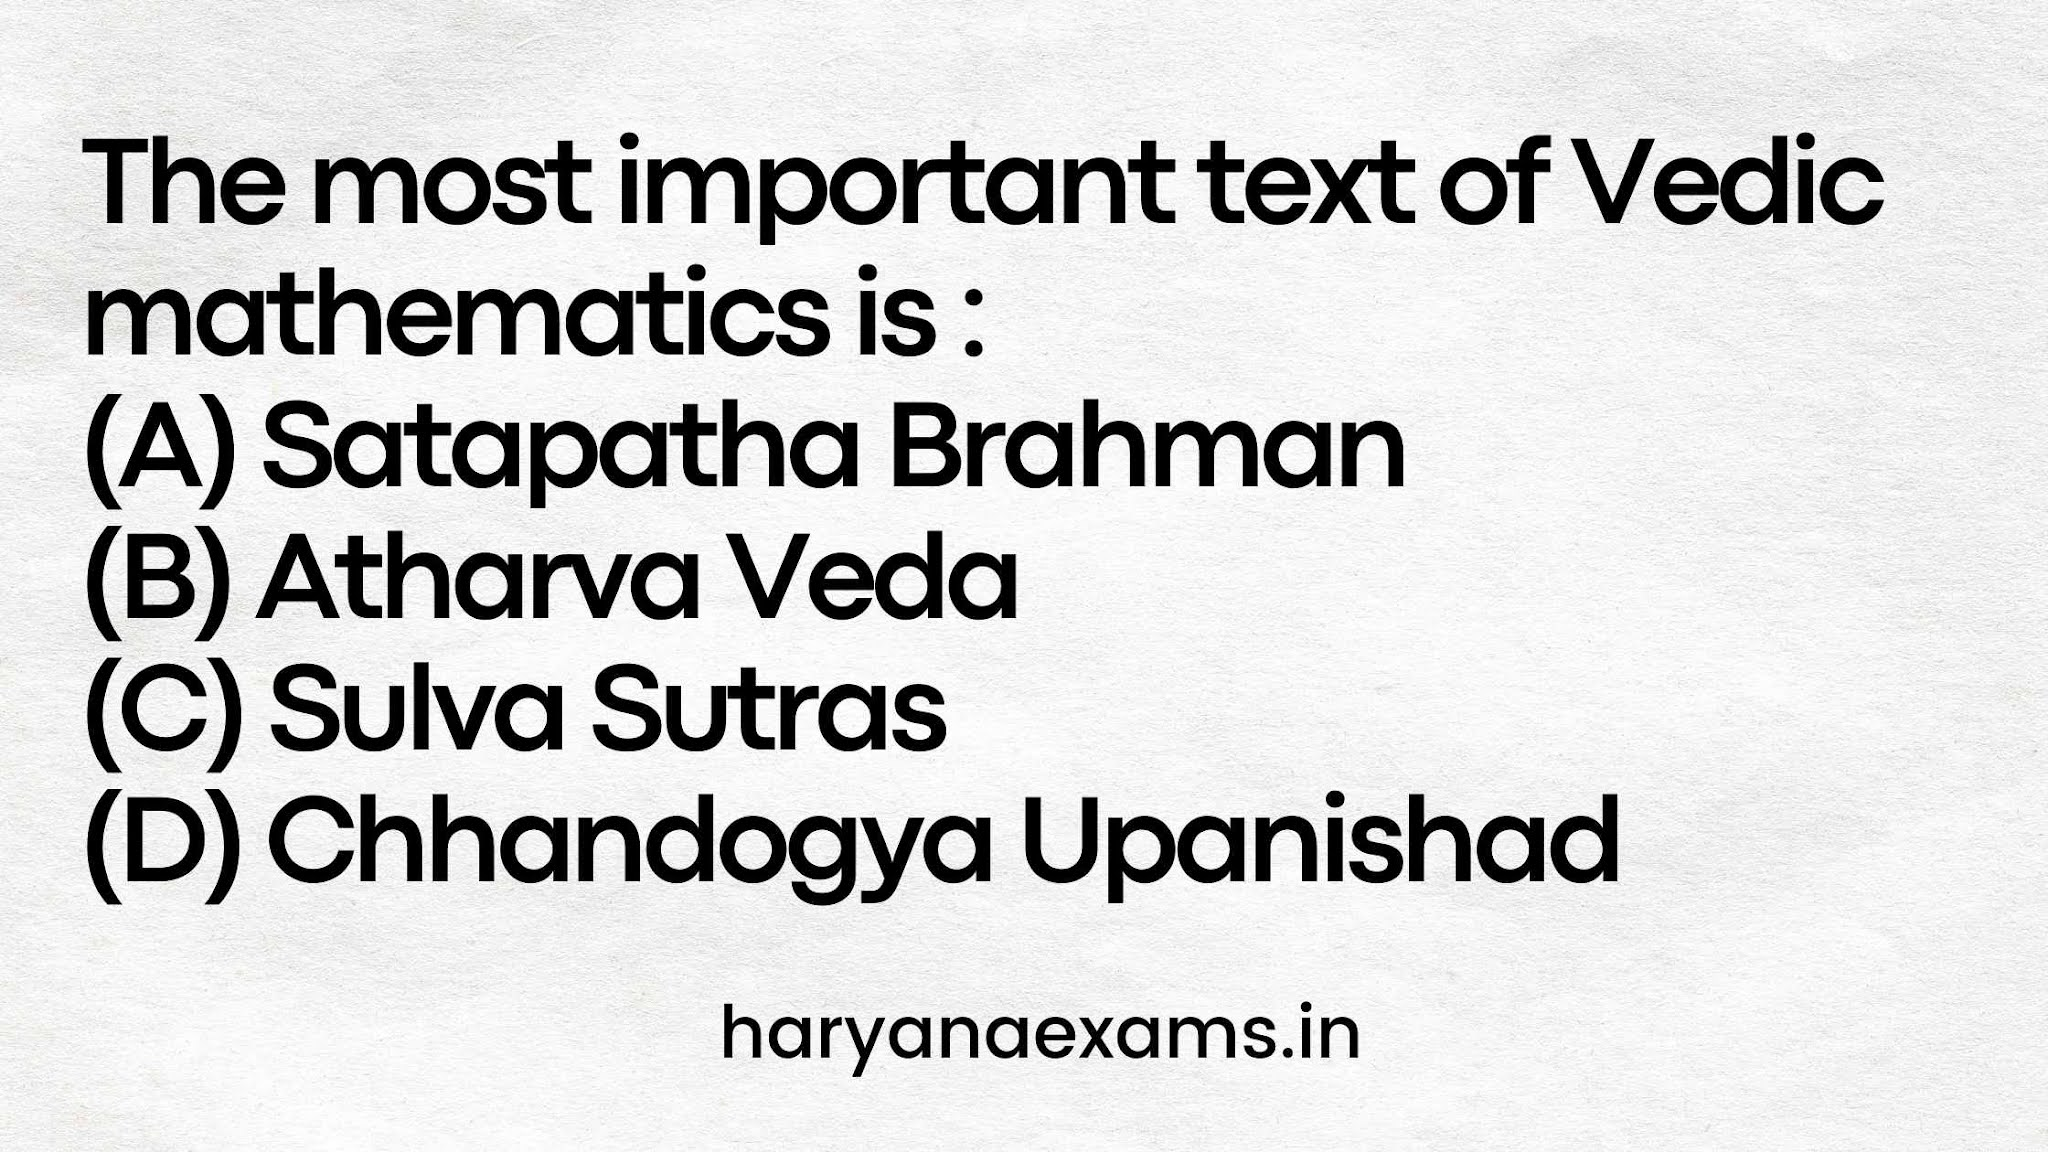 The most important text of Vedic mathematics is :